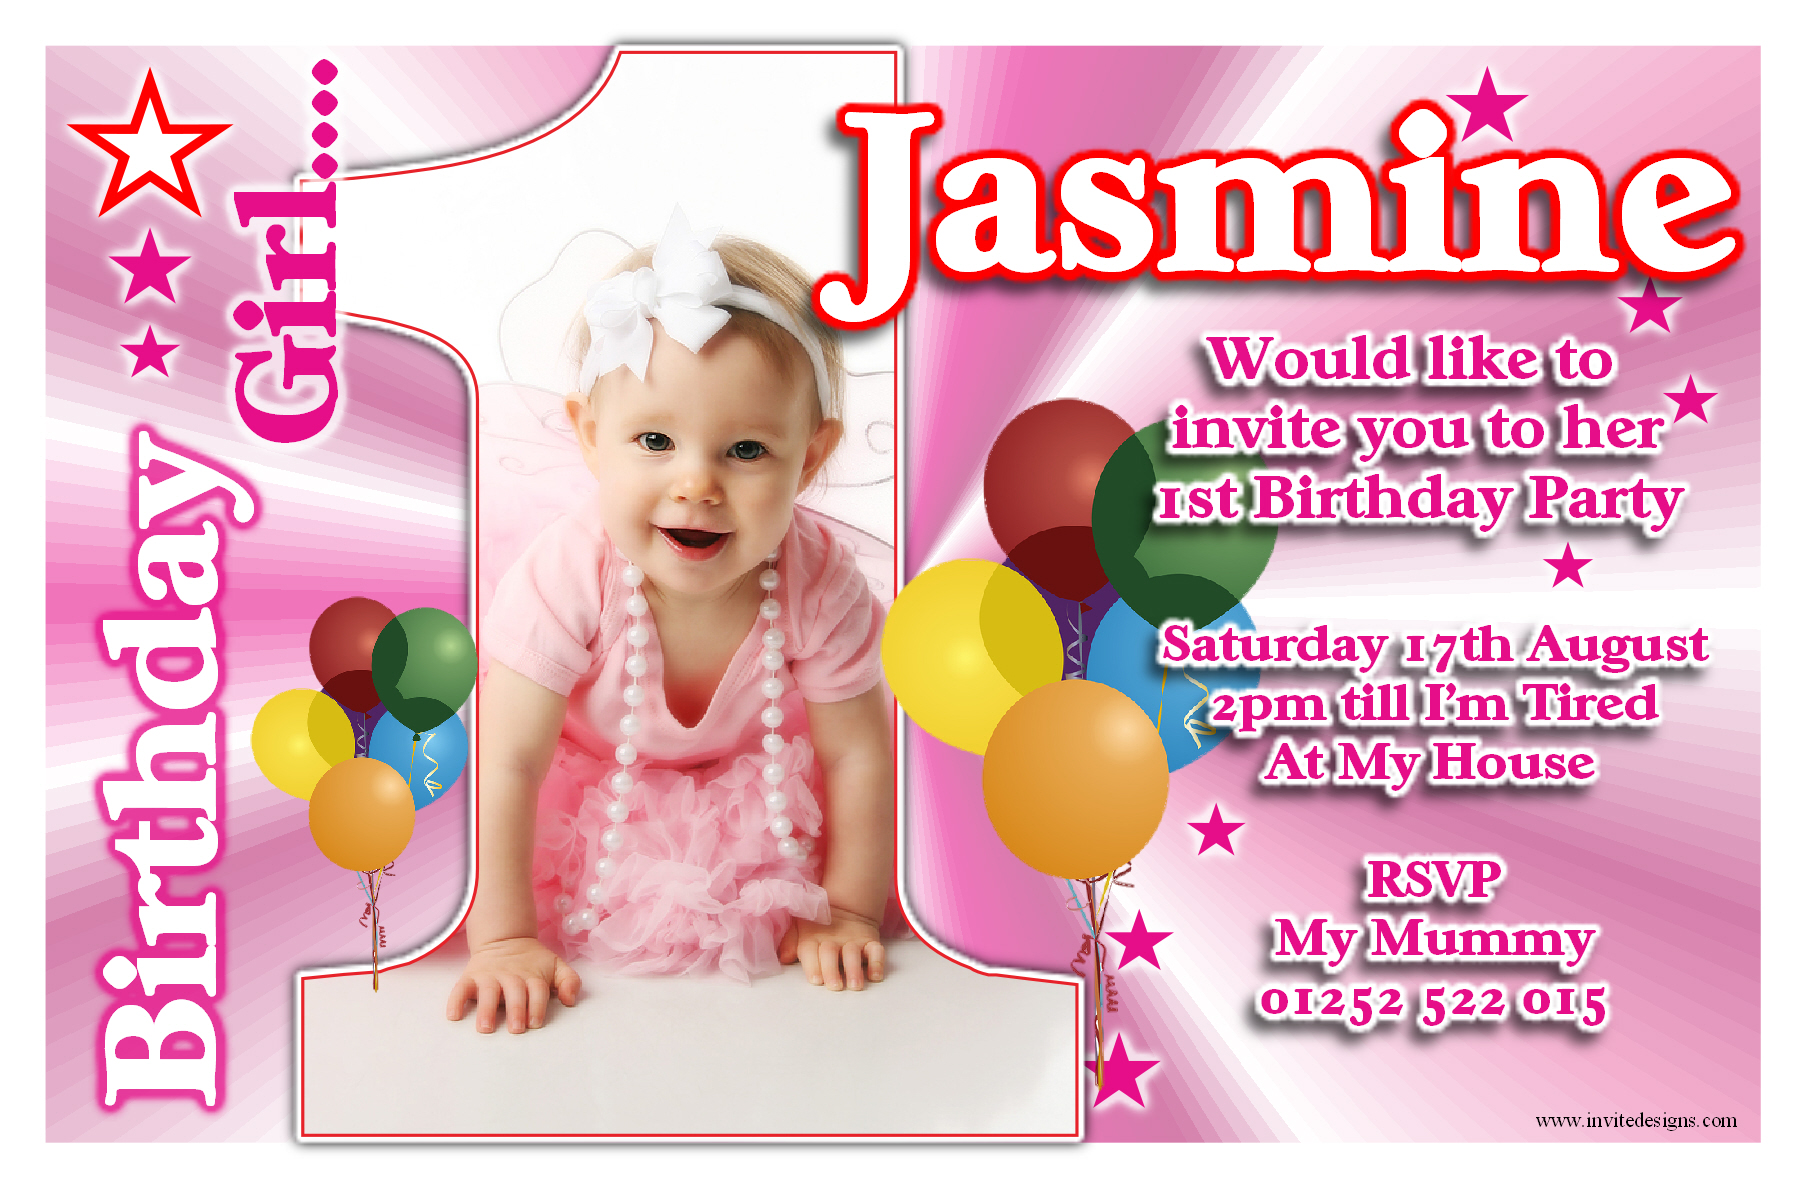 baby birthday invitation card template ; first-birthday-invitation-cards-Free-Invitations-Birthday-Invitations-Invitations-For-Kids-9